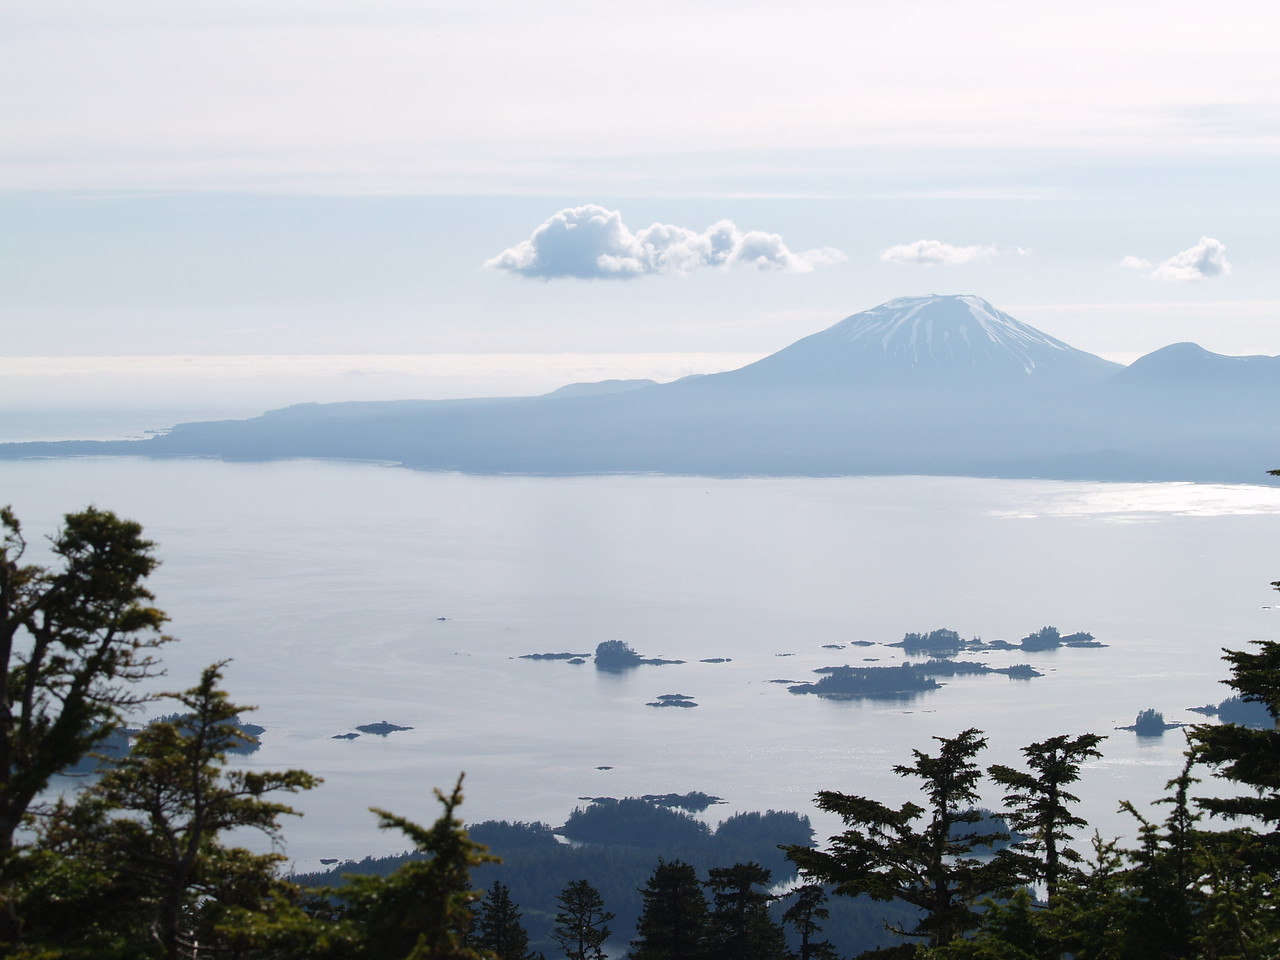 A view of Mt. Edgecumbe from the top of Harbor Mountain (what a hike!). See the snow melt a month later? The road going up to Harbor Mountain had just been opened as the snow had finally melted enough to open the third and last gate to the hiking trail. The stairs up to this point are not for the faint of heart but feel free to step off the path to catch your breath at any time (I did several times) since the whole scene once you reach this point will ultimately leave you breathless!